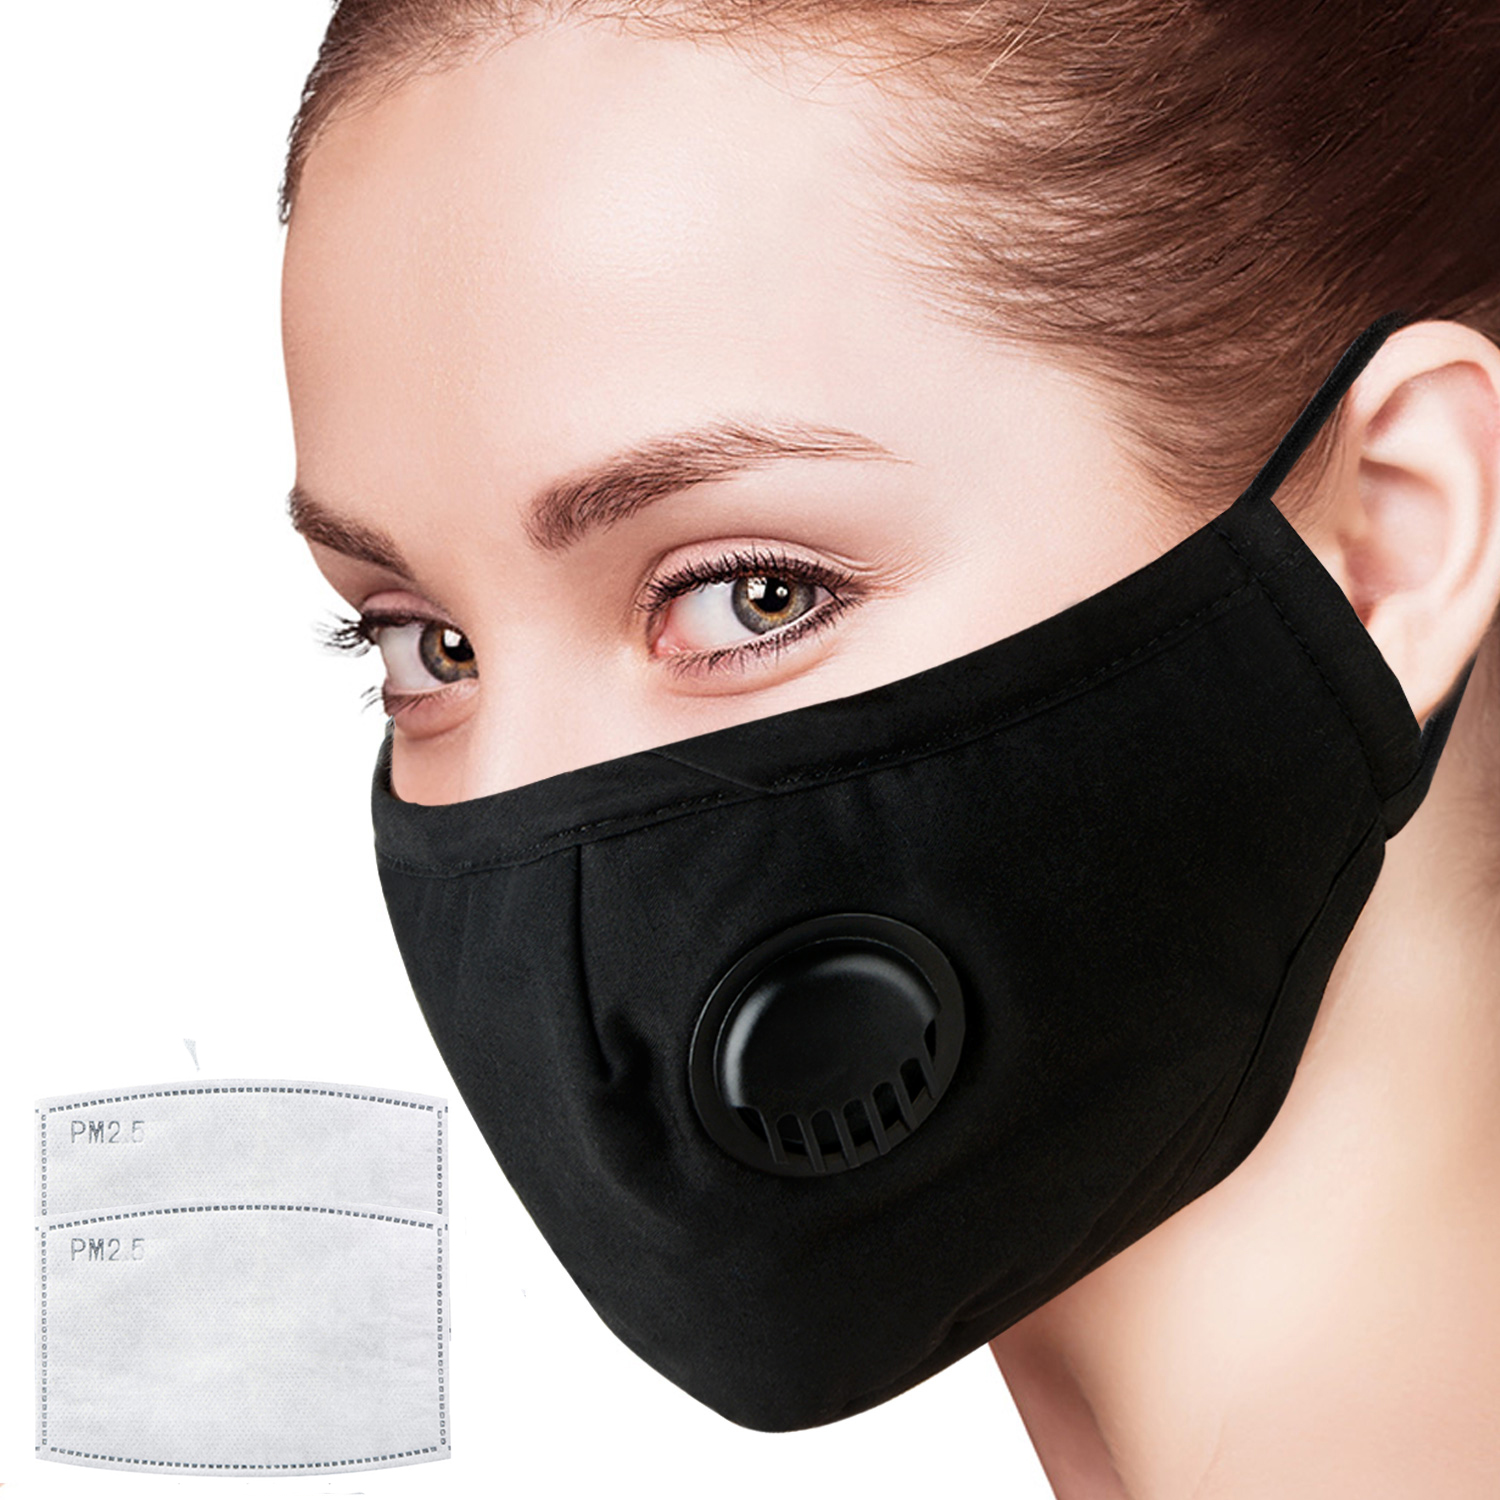 Washable Face Mask Anti Dust PM2.5 Pollution Mouth Masks Activated Carbon Reusable Mouth Cover For Kids Mouth Masks New F24